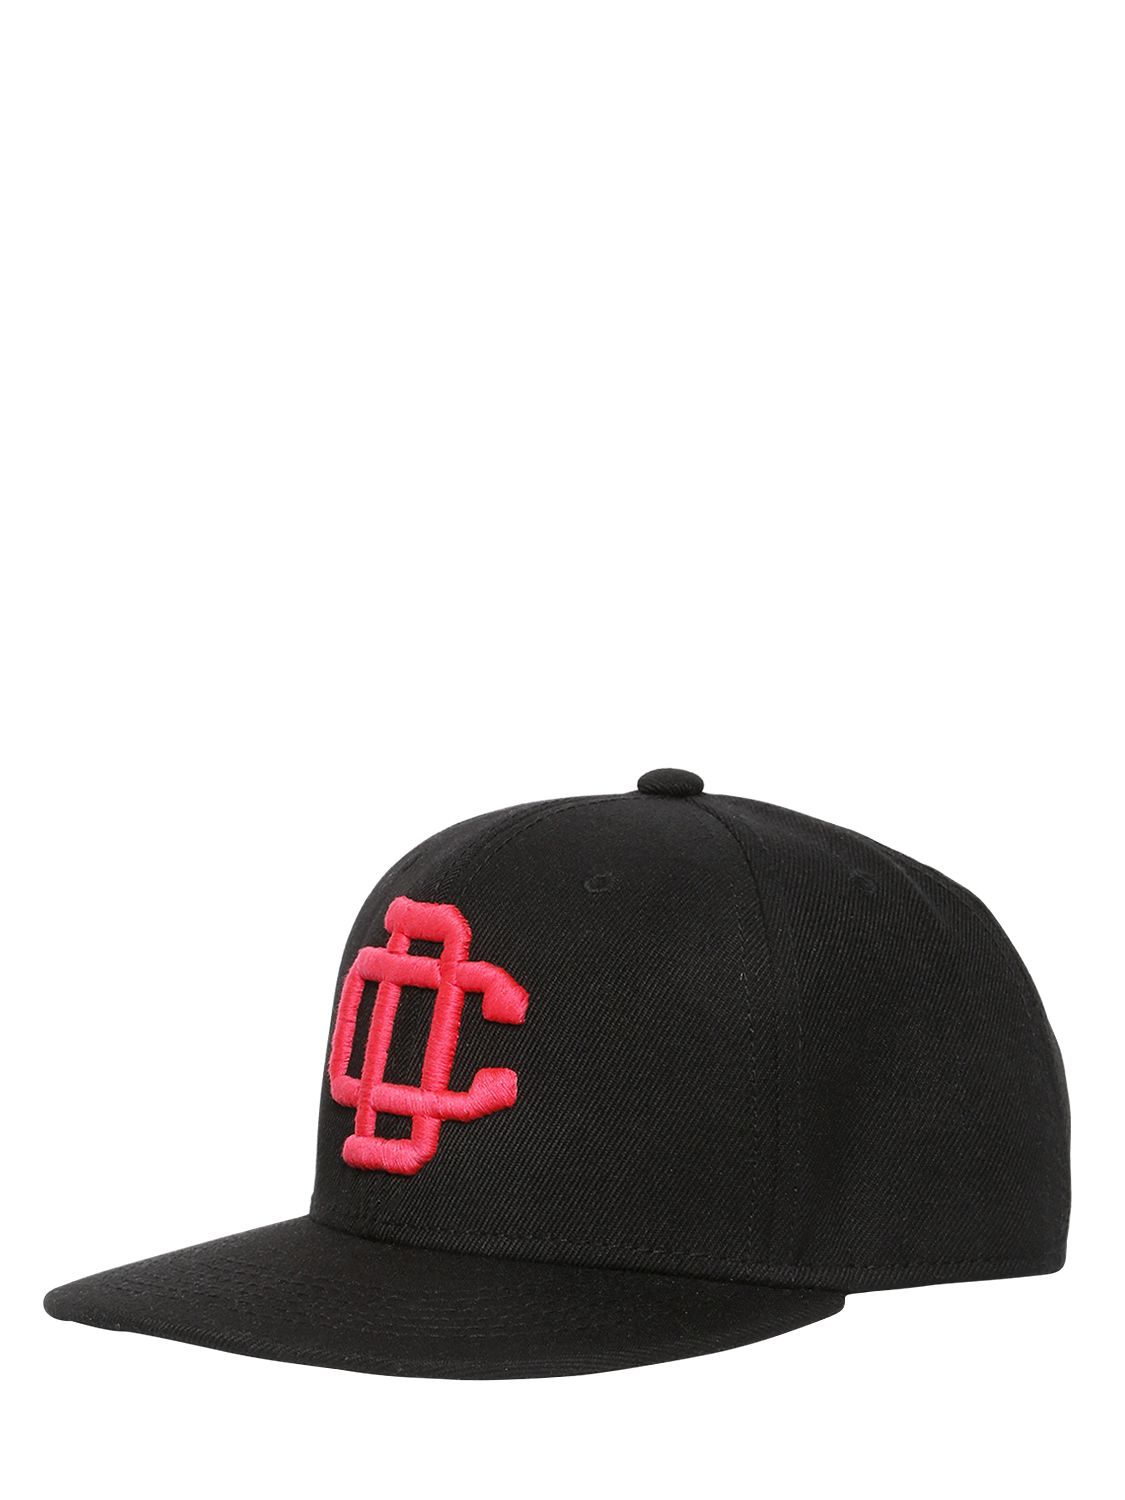 dsquared 178 logo embroidered cotton baseball hat in black